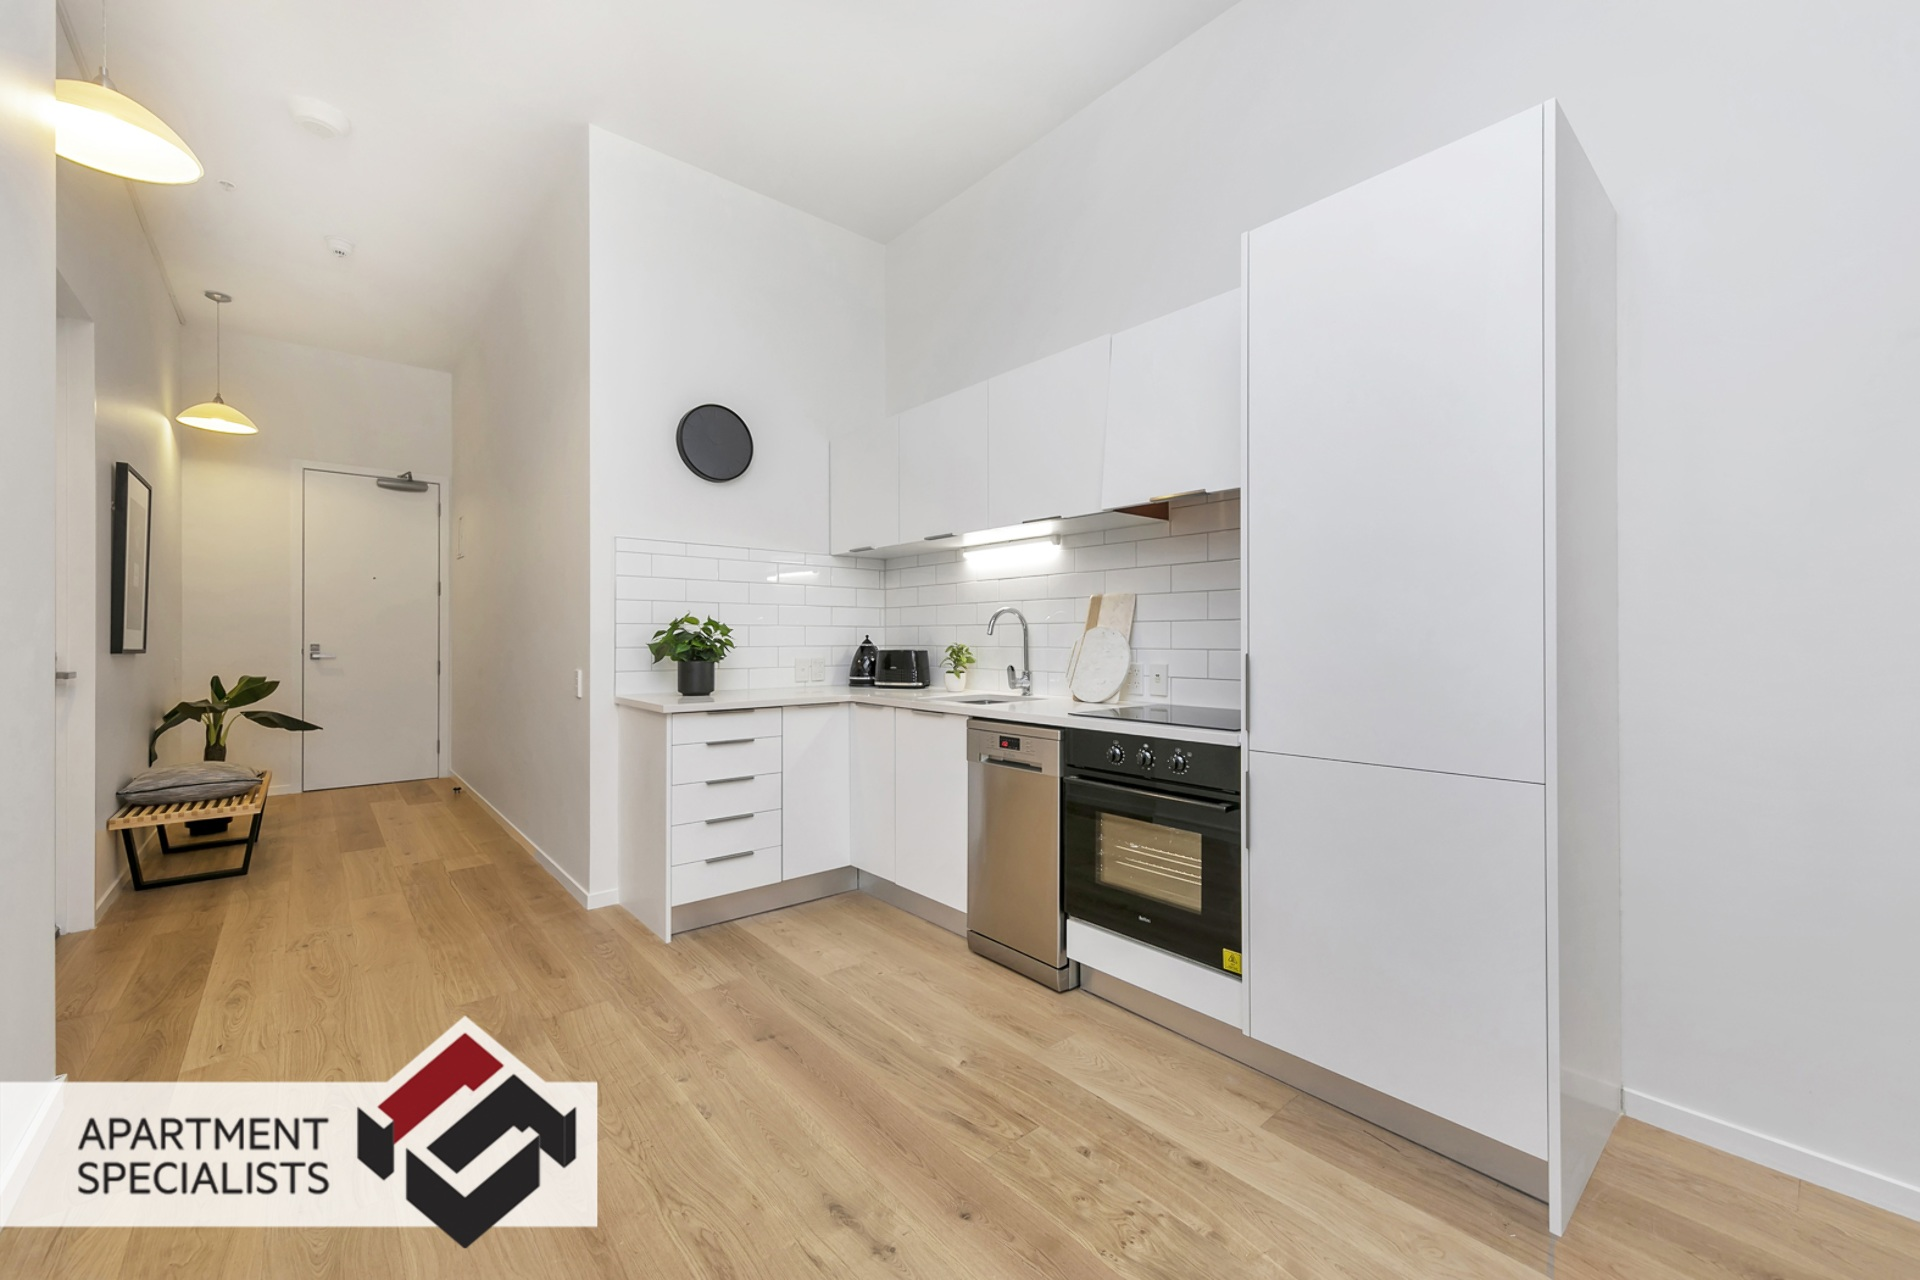 1 | 6 Victoria Street, City Centre | Apartment Specialists